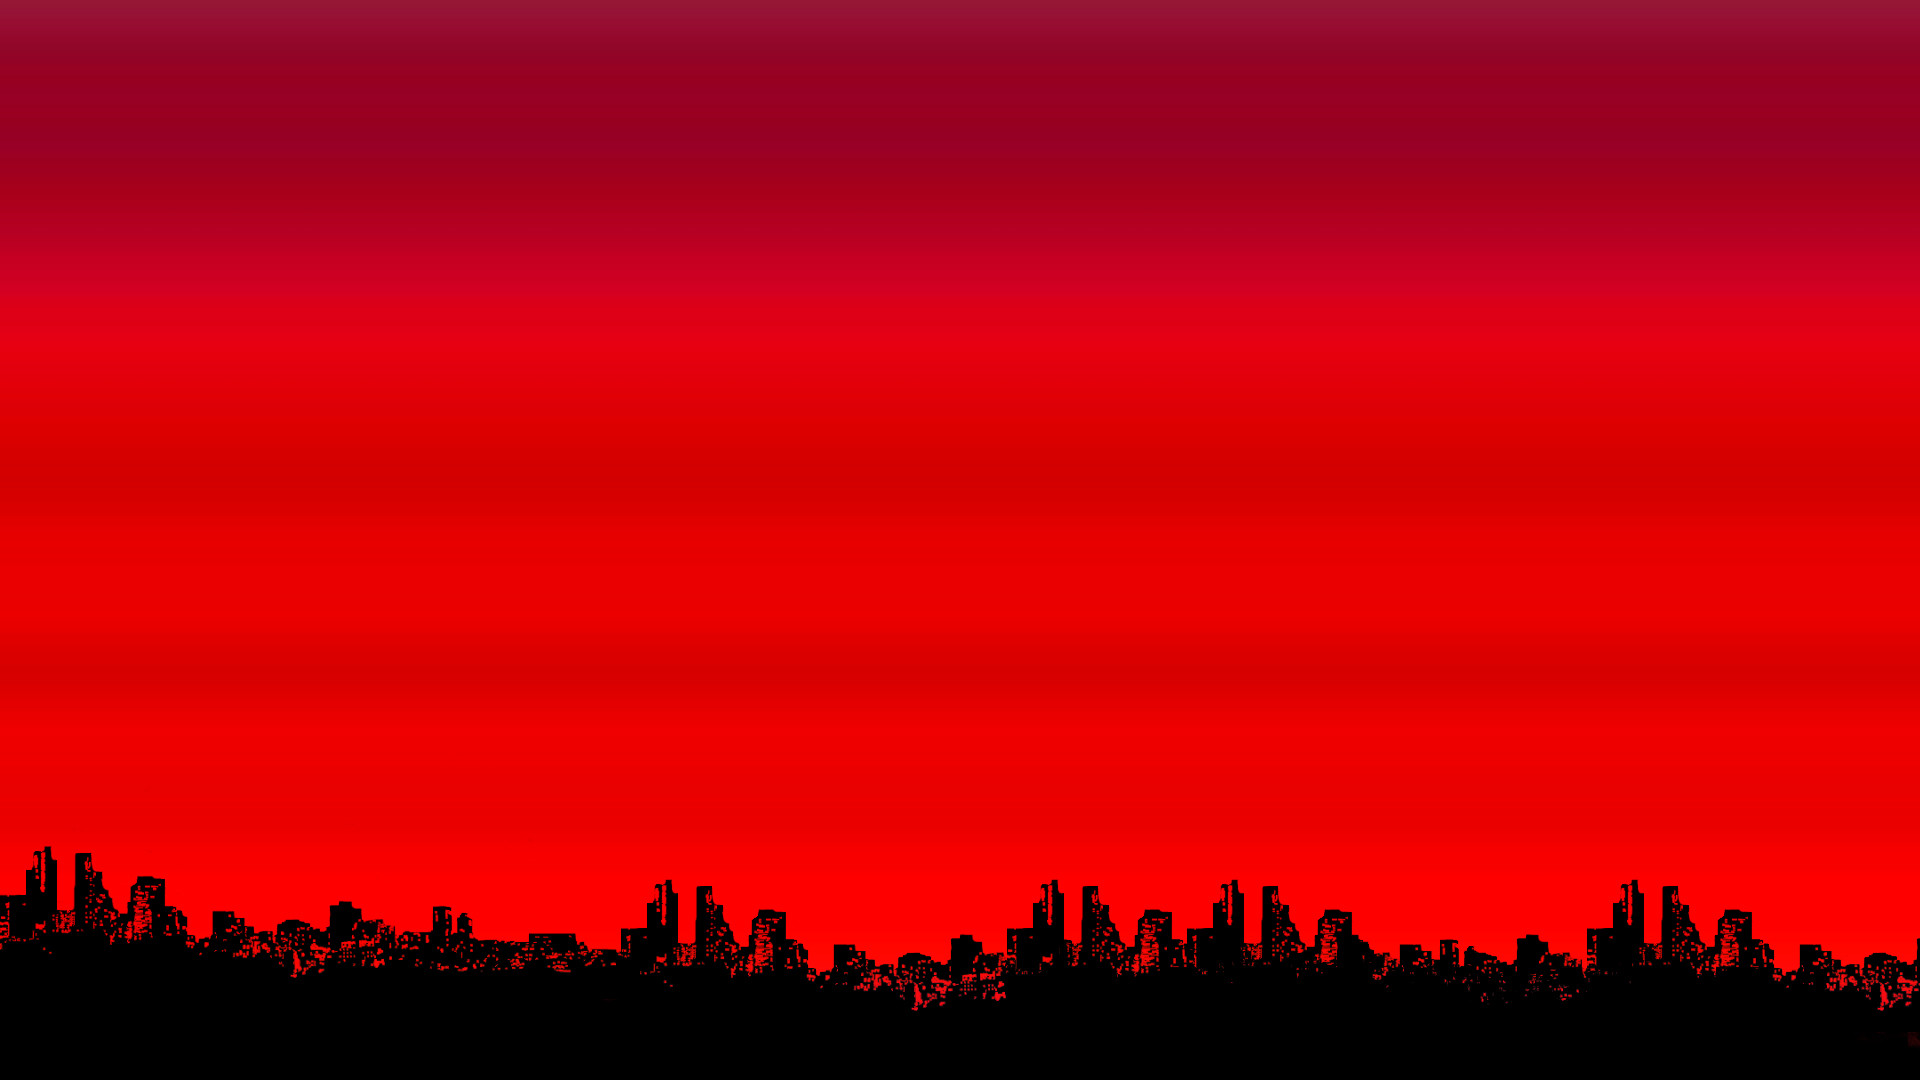 abstract red Wallpaper Backgrounds